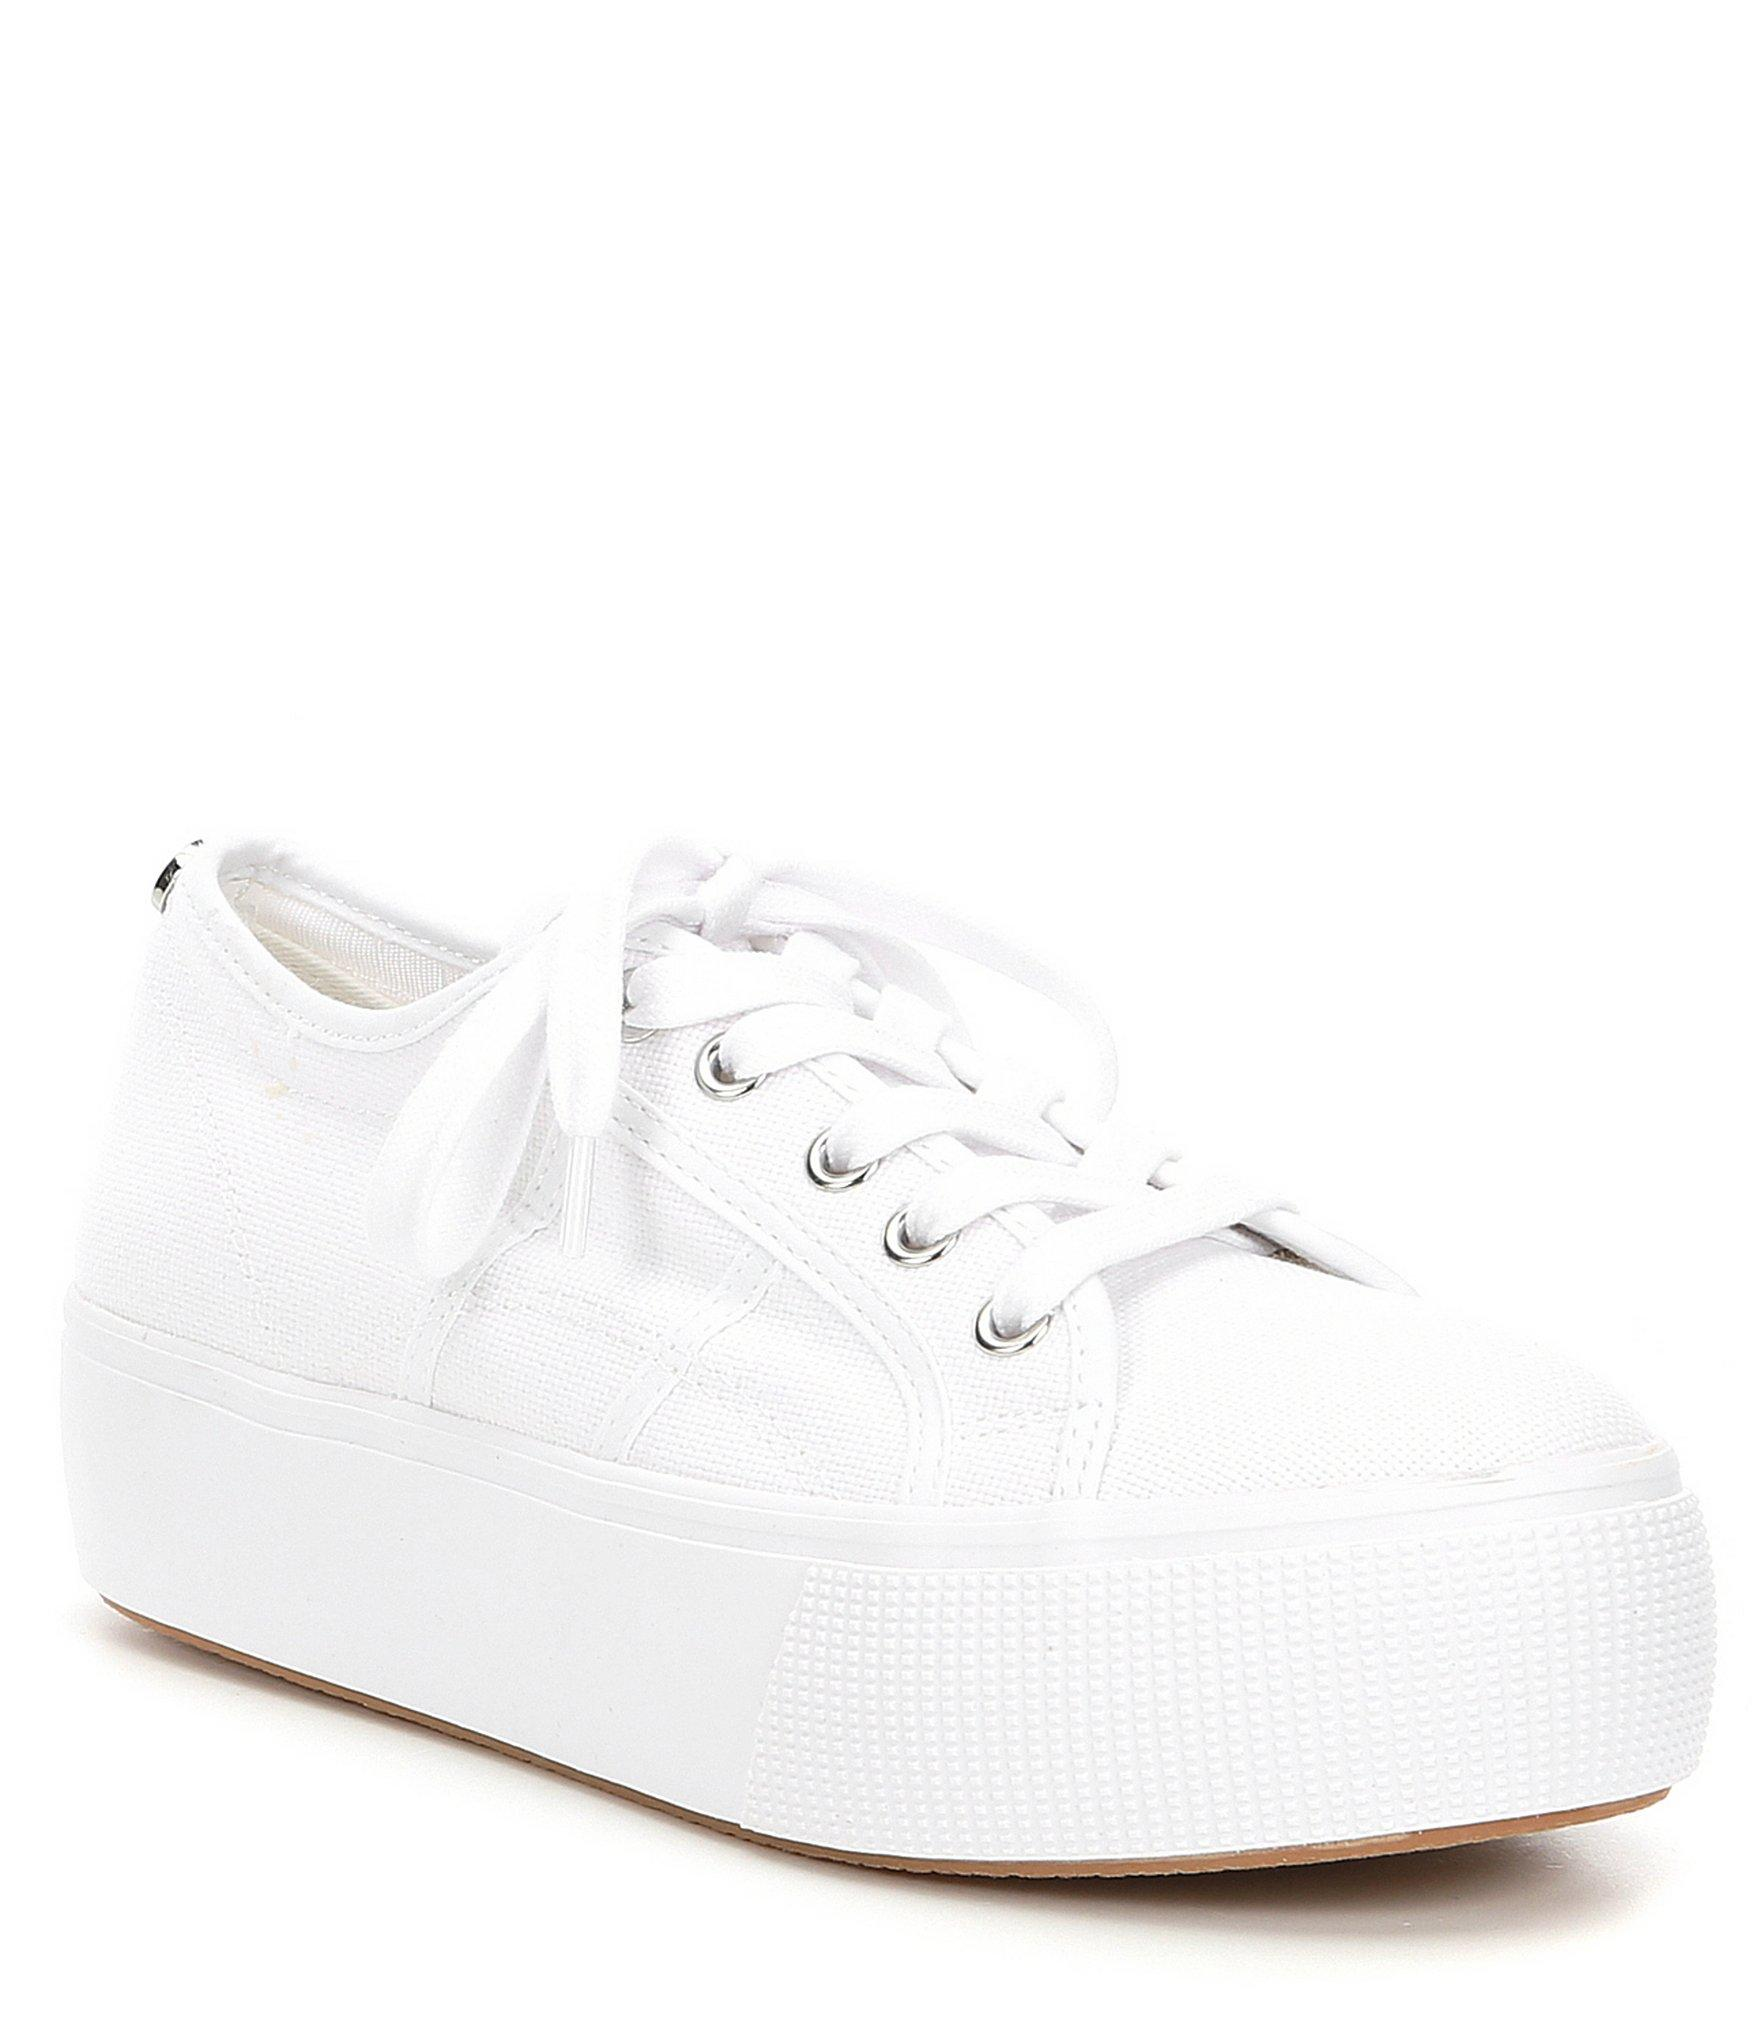 61f5d9347562 Lyst - Steve Madden Emmi Canvas Platform Sneakers in White